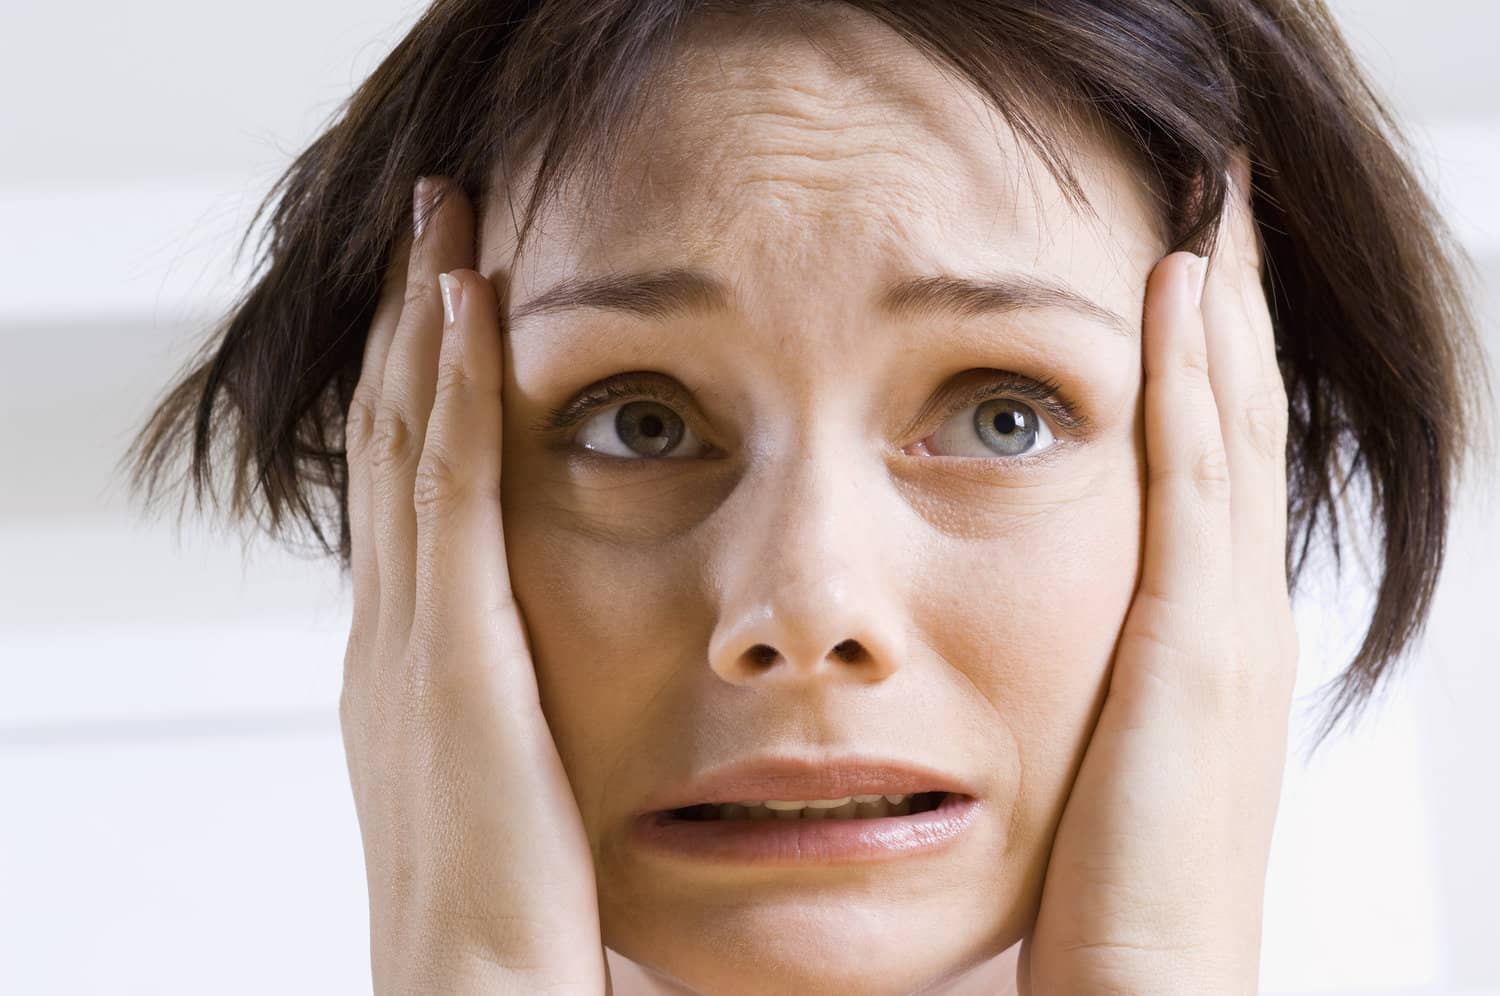 Stressed women suffering anxiety